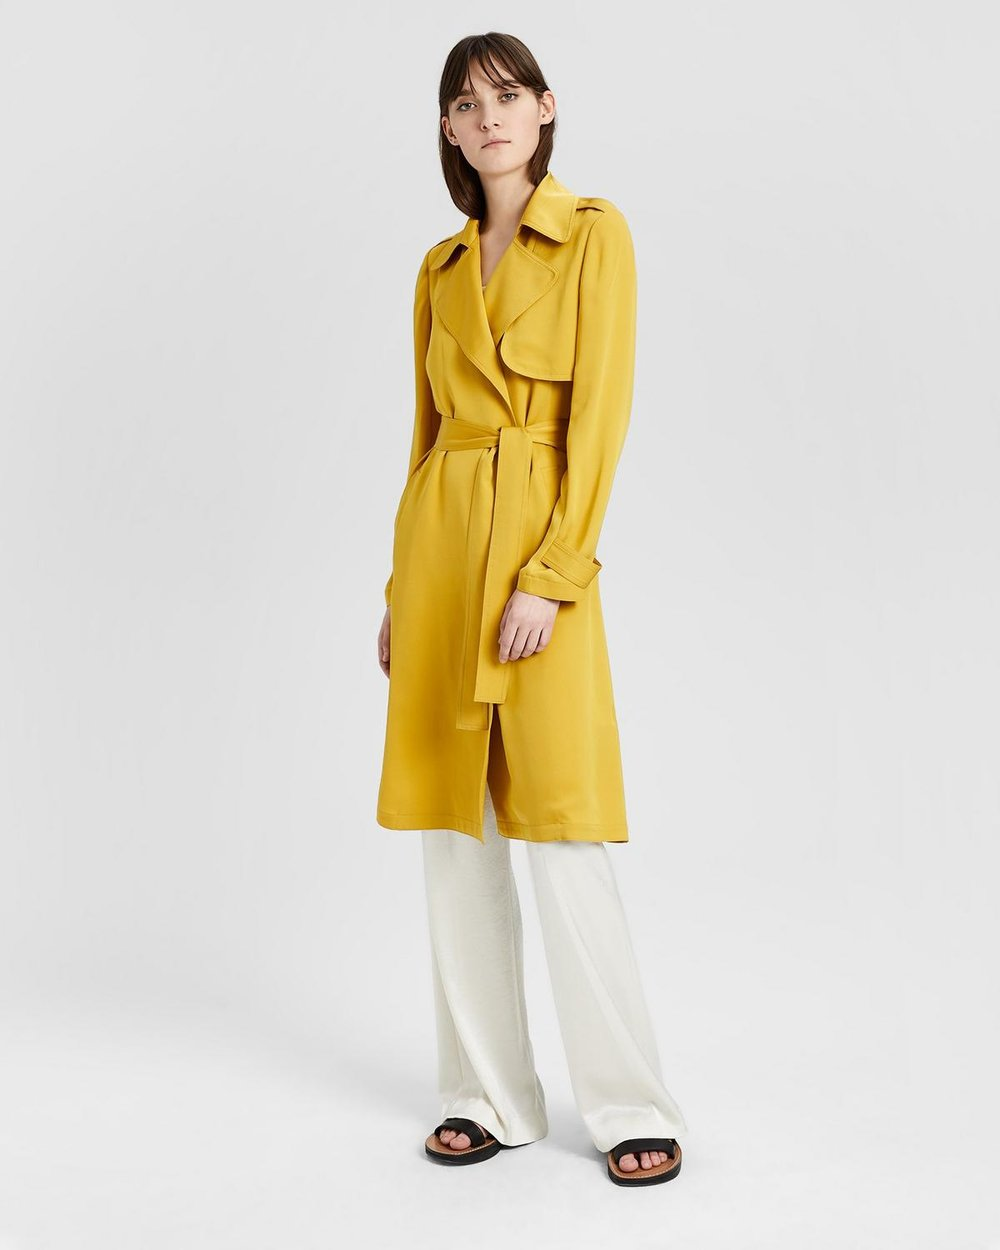 theory yellow trench.jpeg